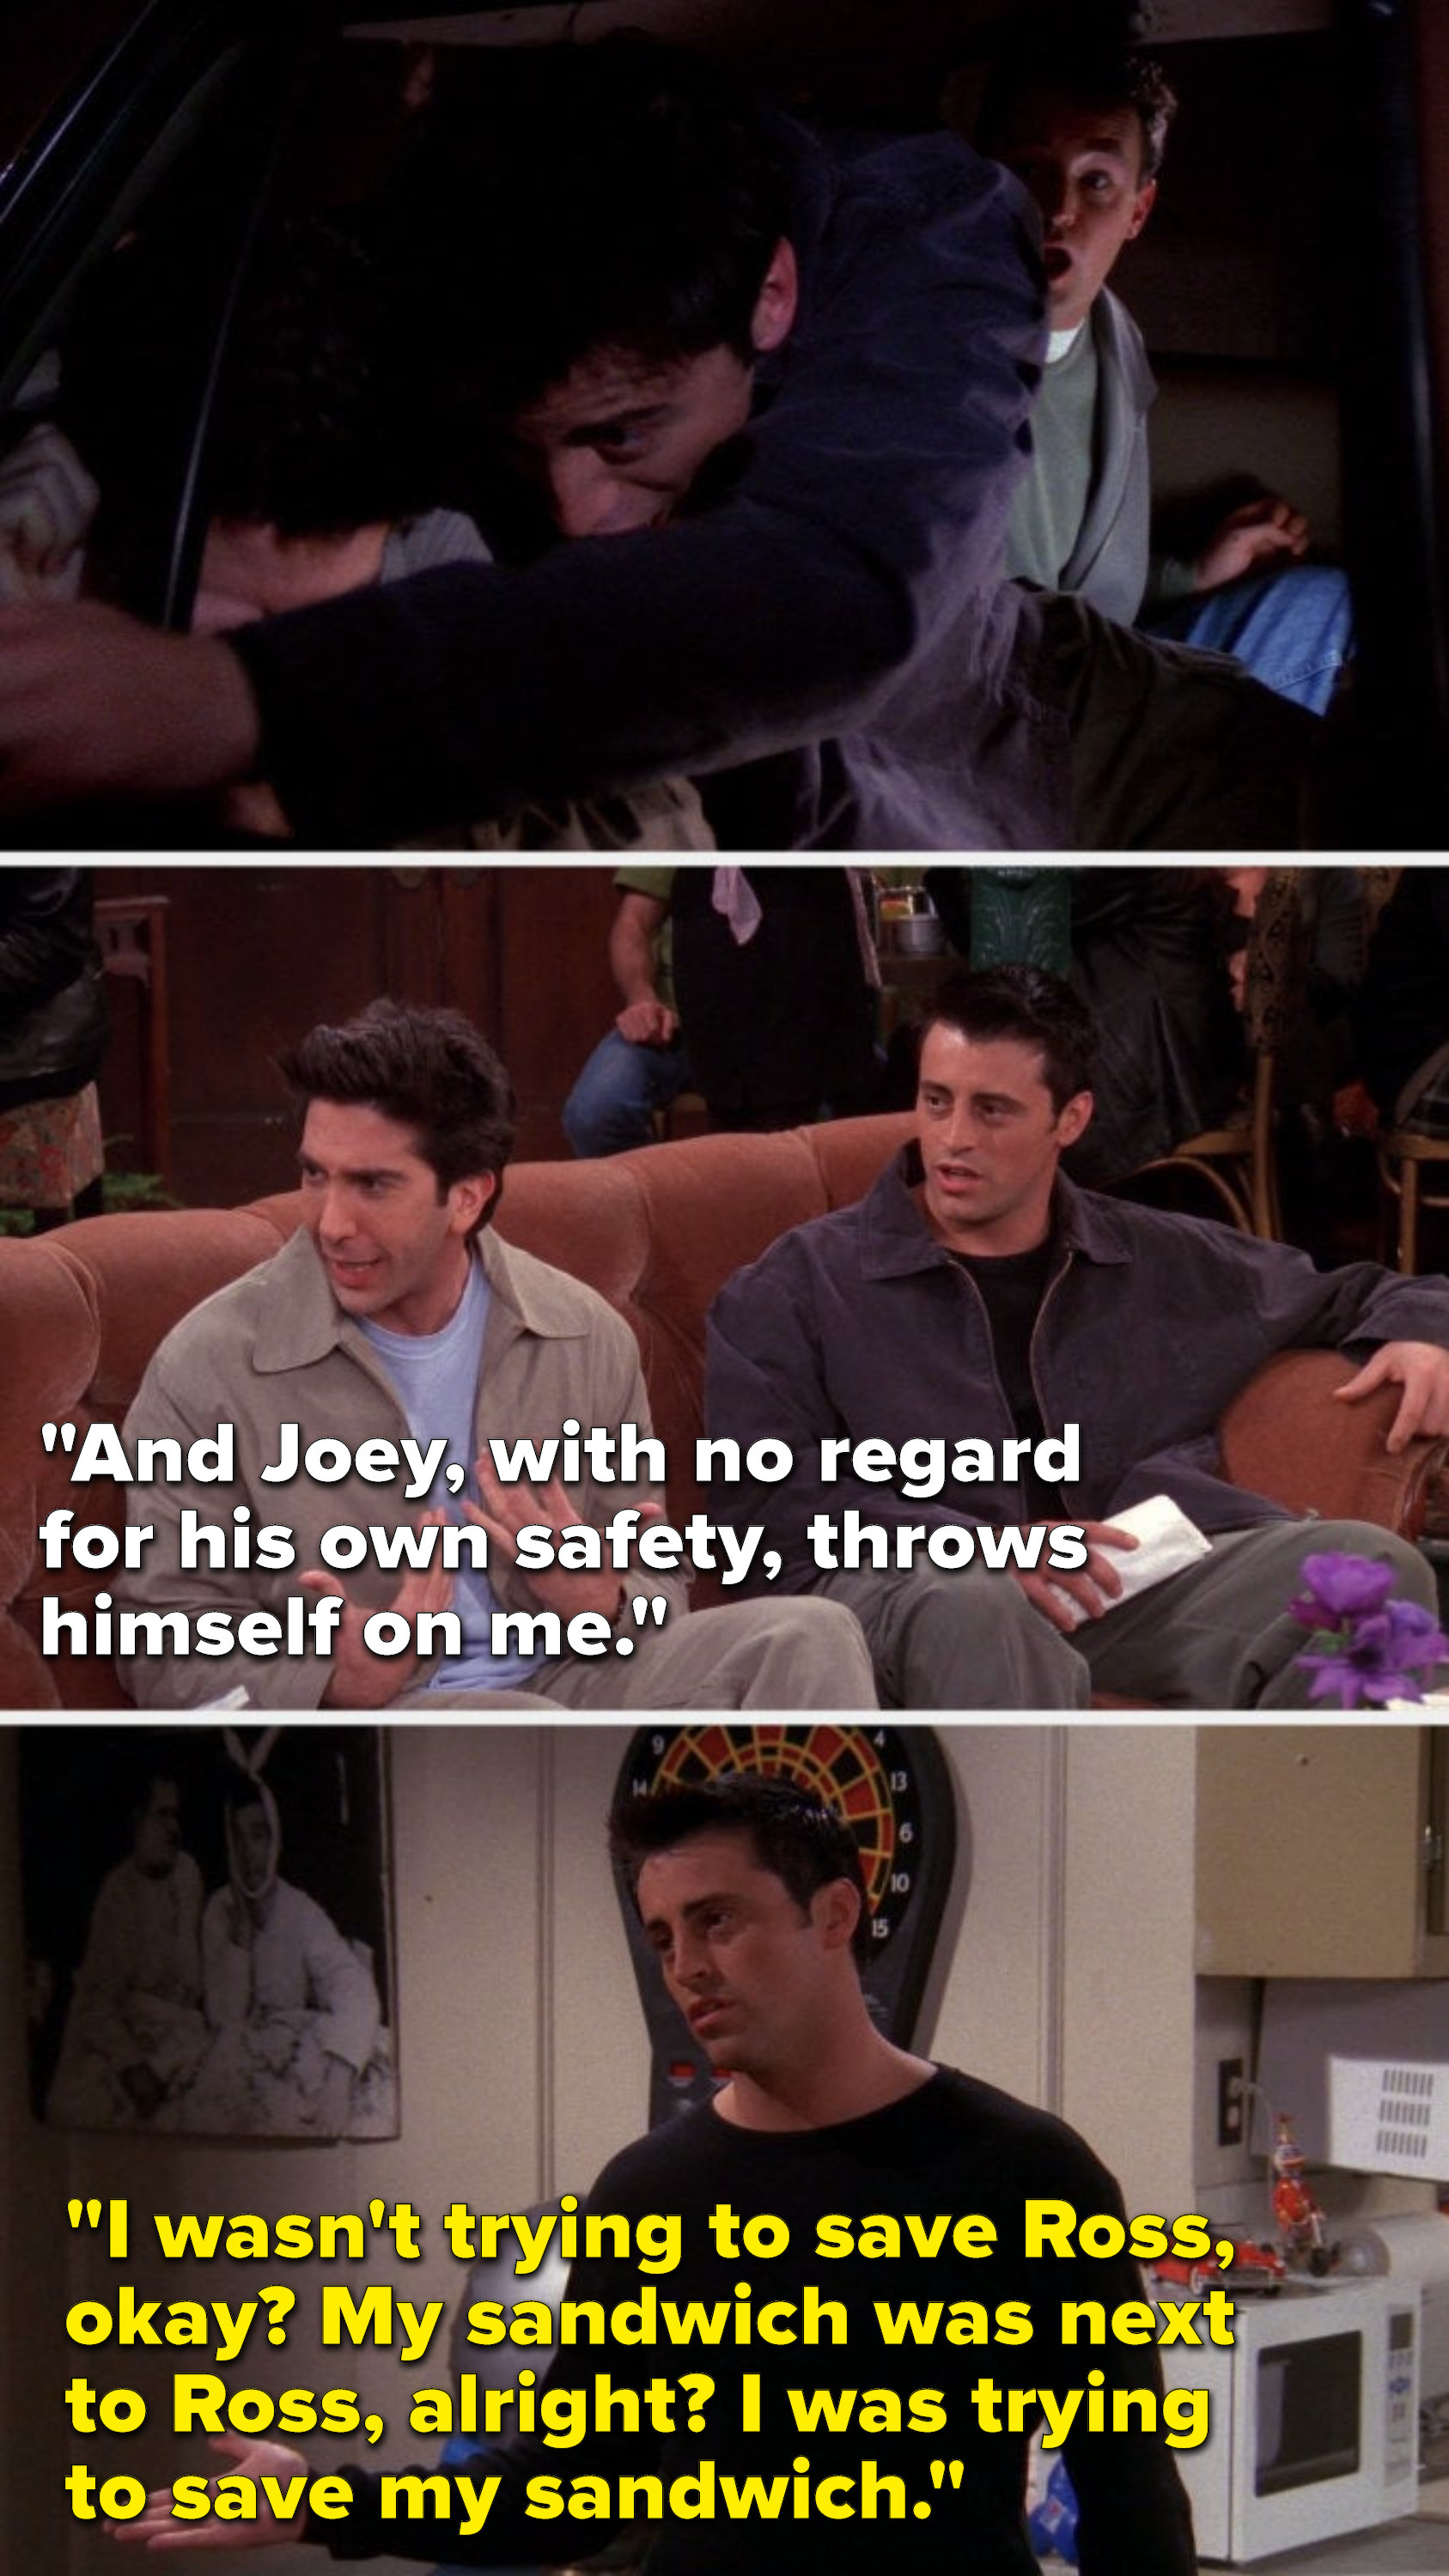 """Joey lunges over Ross in the police car, later Ross says, """"Joey, with no regard for his own safety, throws himself on me,"""" then later Joey says, """"I wasn't trying to save Ross, okay, my sandwich was next to Ross, alright, I was trying to save my sandwich"""""""